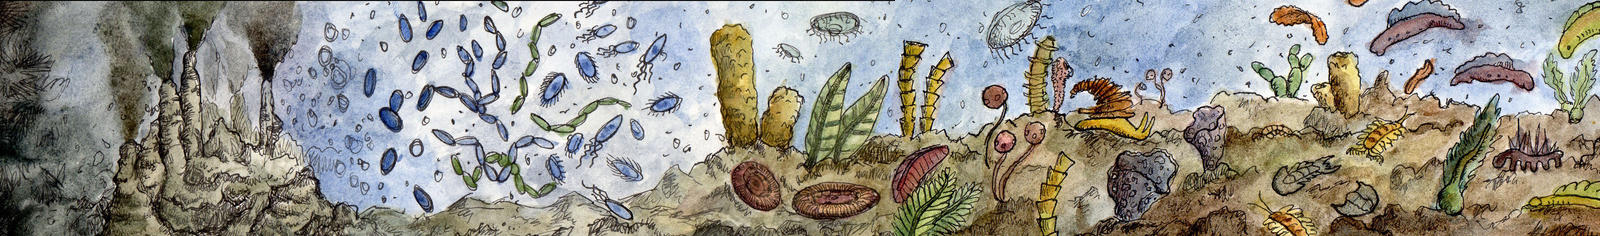 History of Life - Origin to Early Cambrian by SuperGiantBird